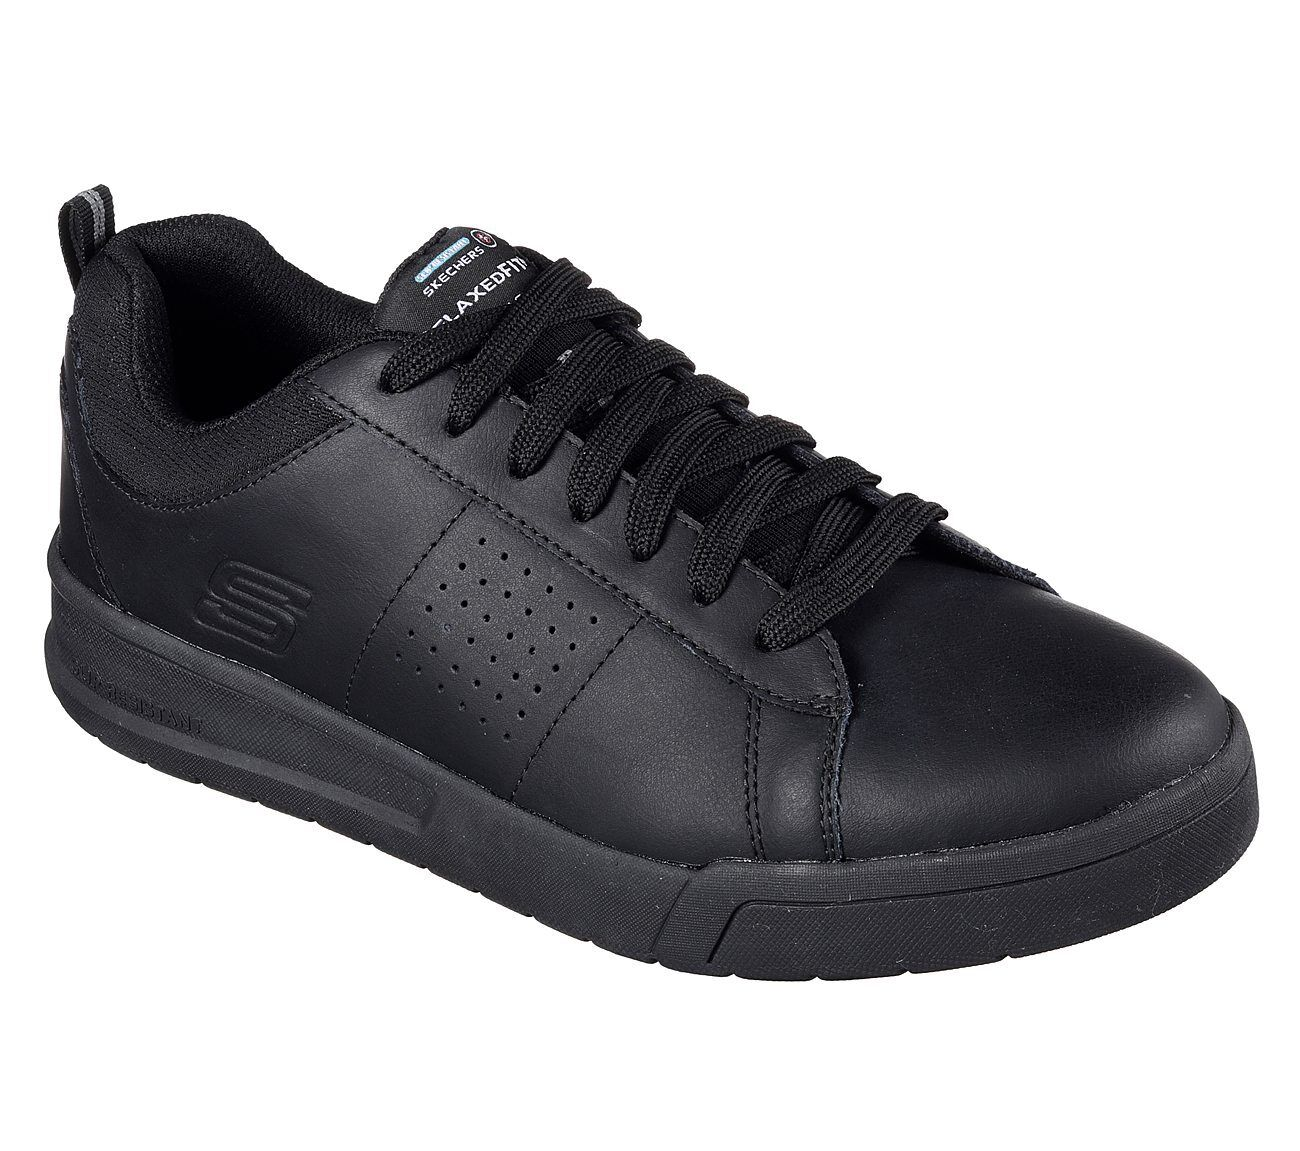 77101 Skechers for Work Men's Burgin Glenner SR shoes Black